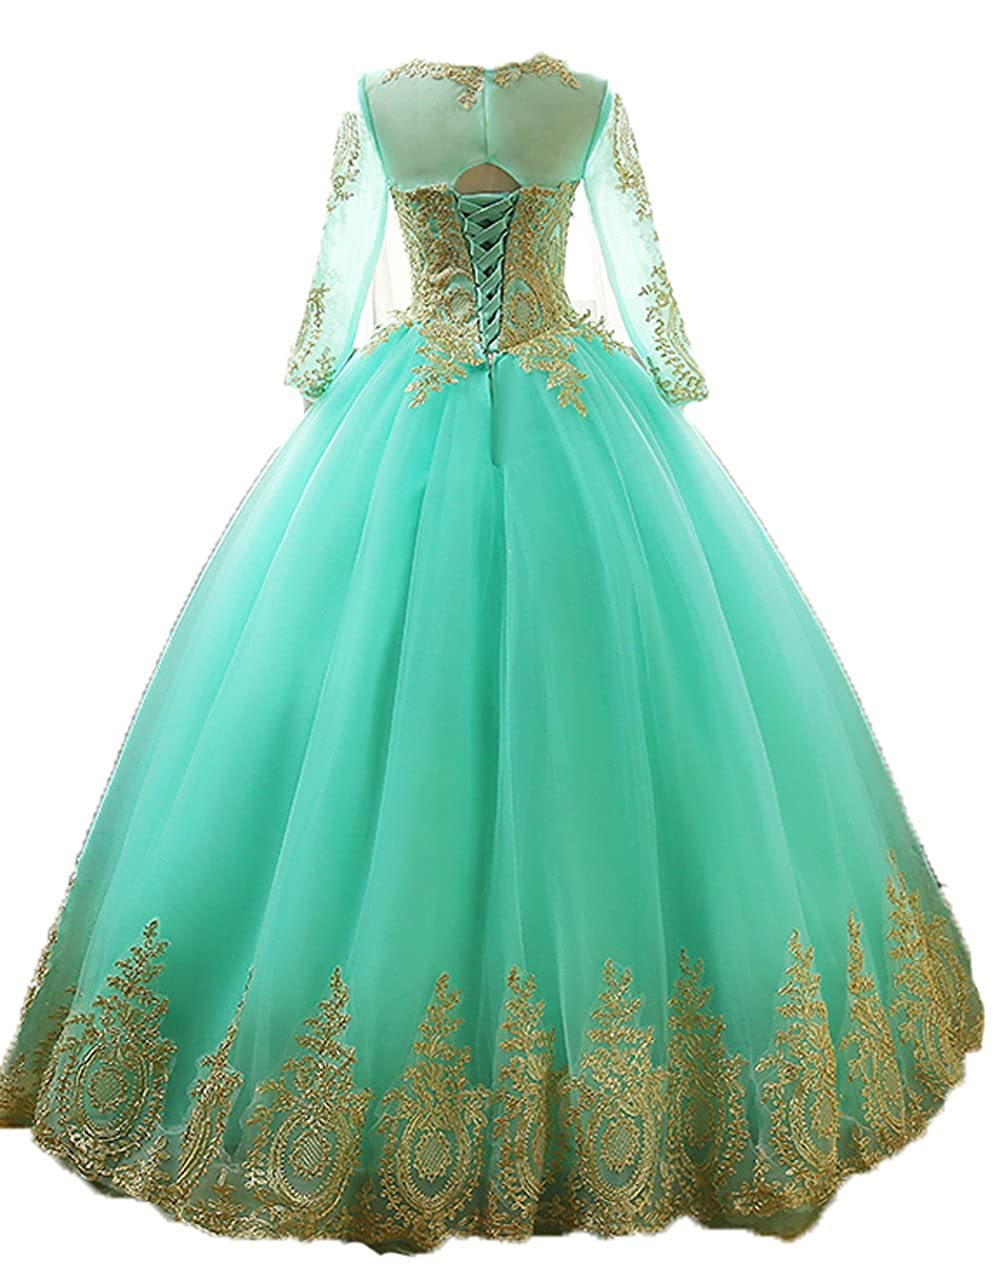 bcbe9b9e209 Quinceanera Dresses Teal And Gold - Data Dynamic AG